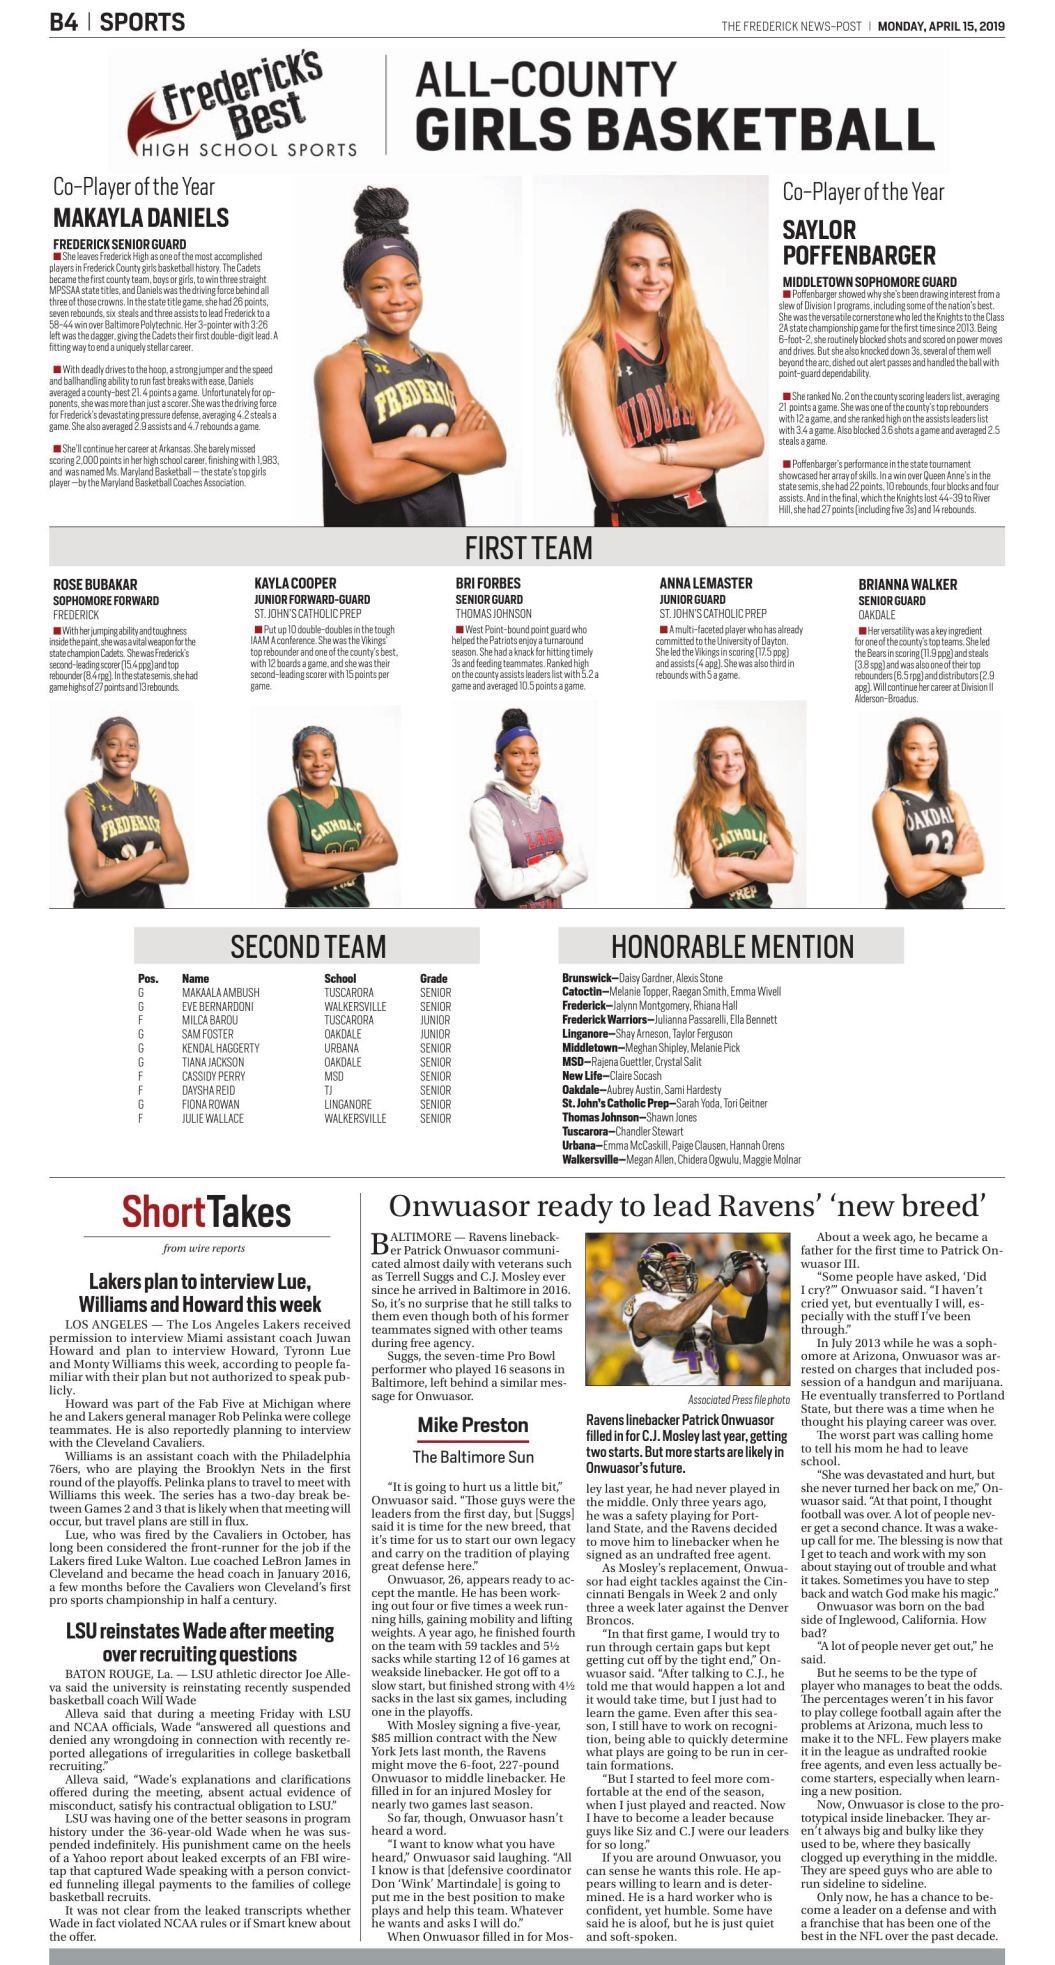 2018-19 All-County Girls Basketball Team